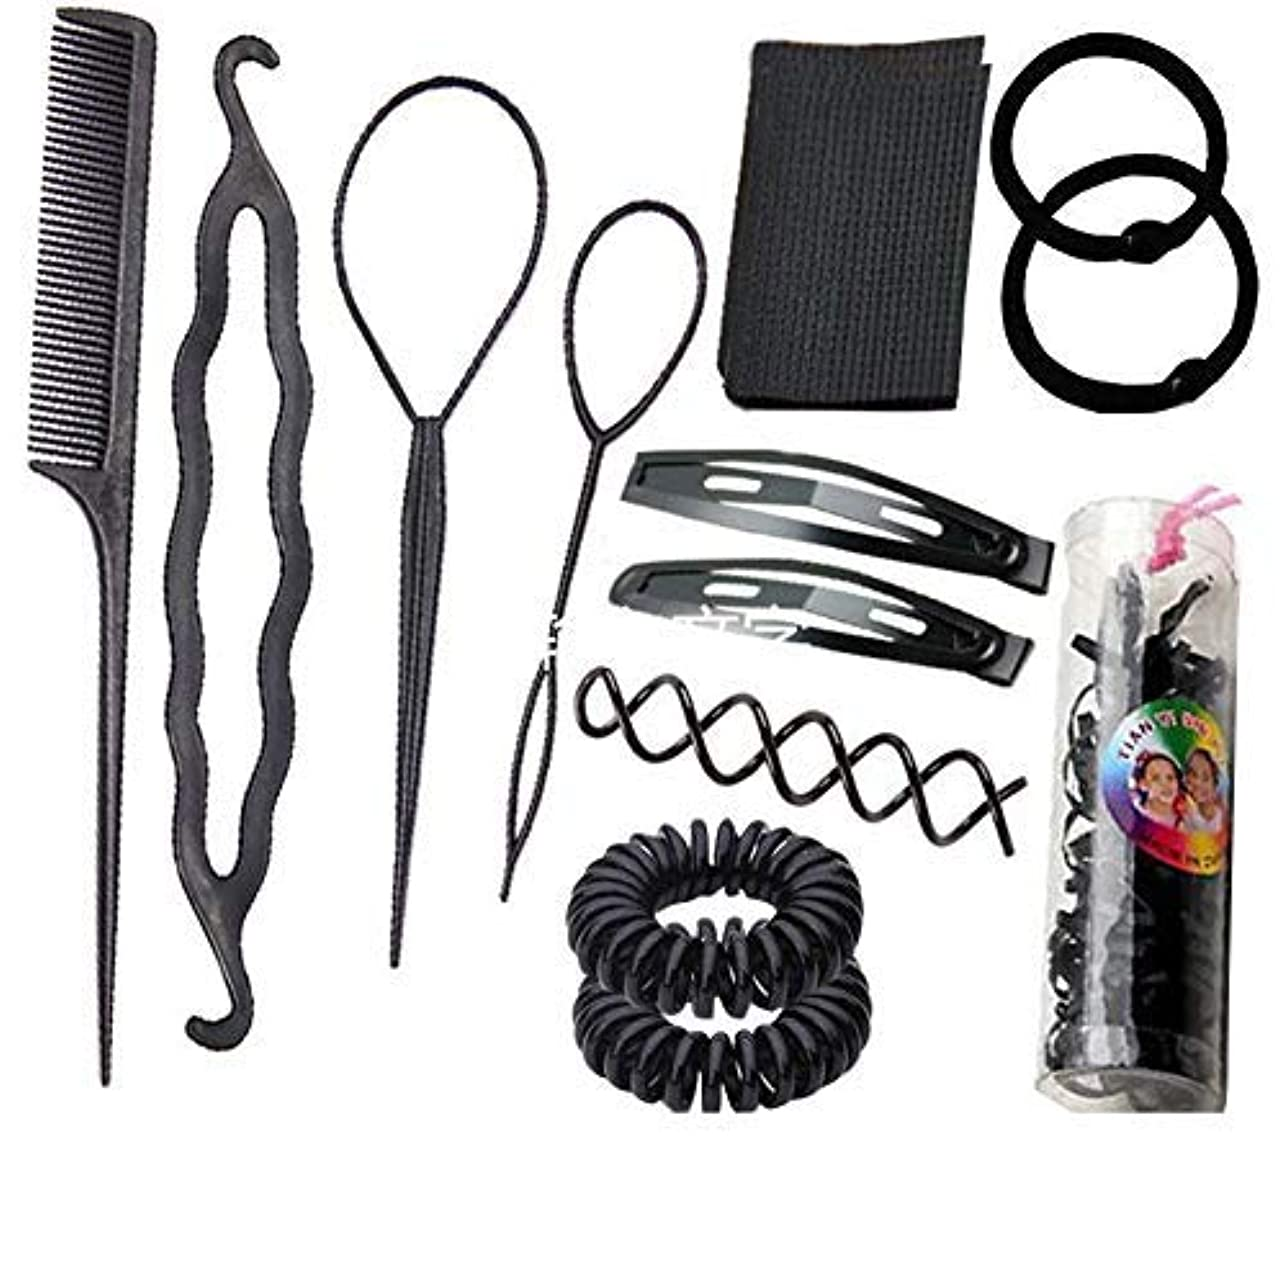 値する経済港1 Set Black 13 in 1 Hair Style Making Accessories Kits Hair Comb Metal Hairpins Hair Tools Hair Ropes Fringes Hair Pads Hair Pins Updo Hair Tools DIY Hairdressing for Home Use [並行輸入品]